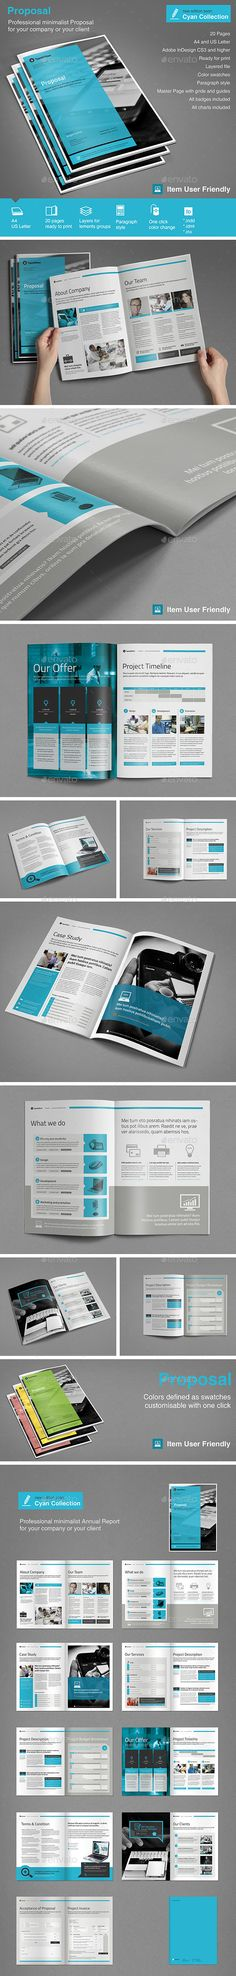 Catch out this Highly creative Photography Portfolio Brochure - graphic design proposal template